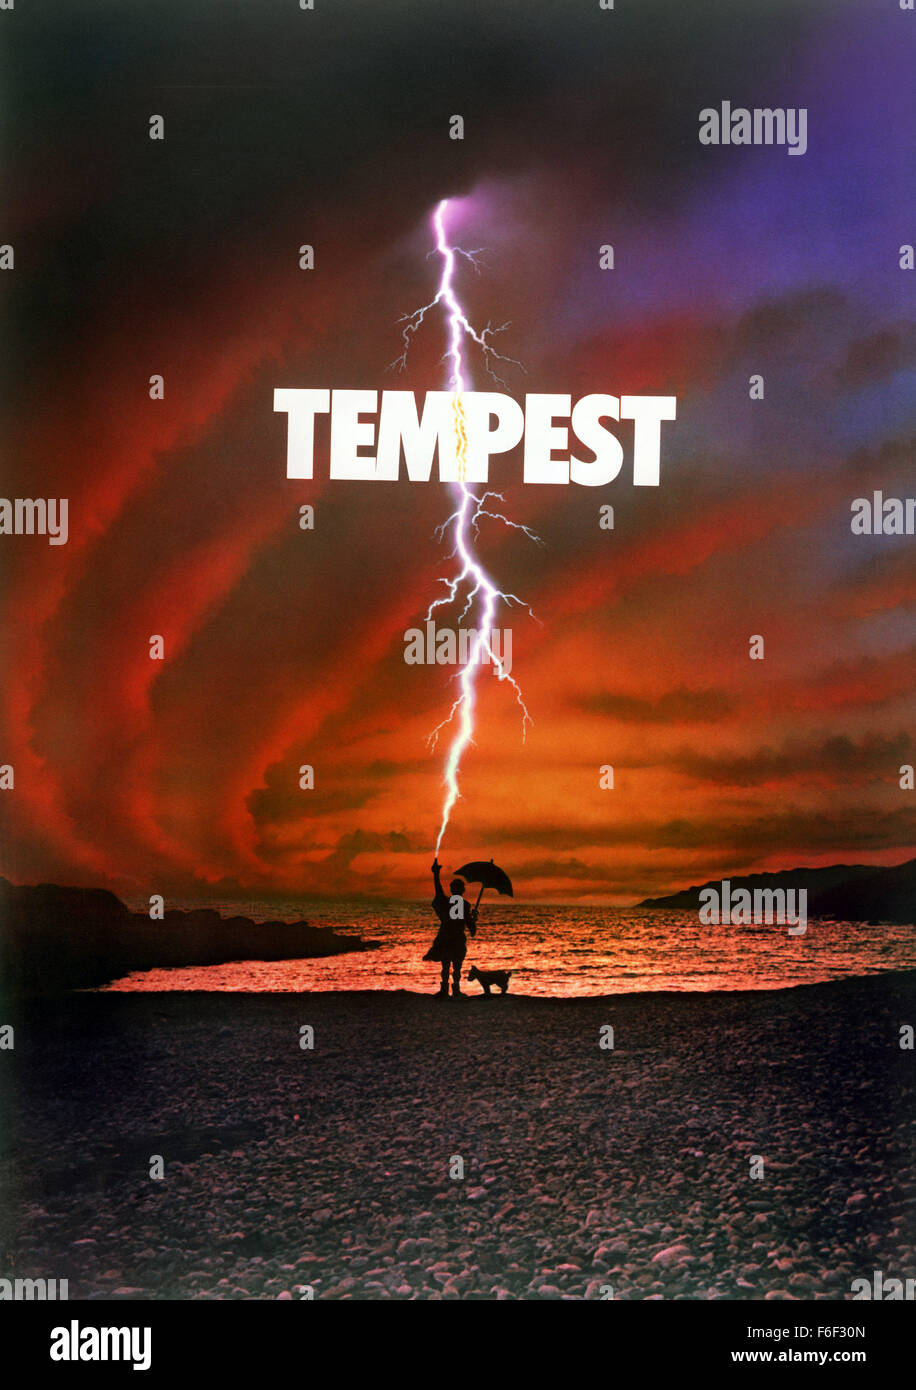 RELEASE DATE: August 13, 1982  MOVIE TITLE: Tempest  DIRECTOR: Paul Mazursky  STUDIO: Columbia Pictures Corporation - Stock Image